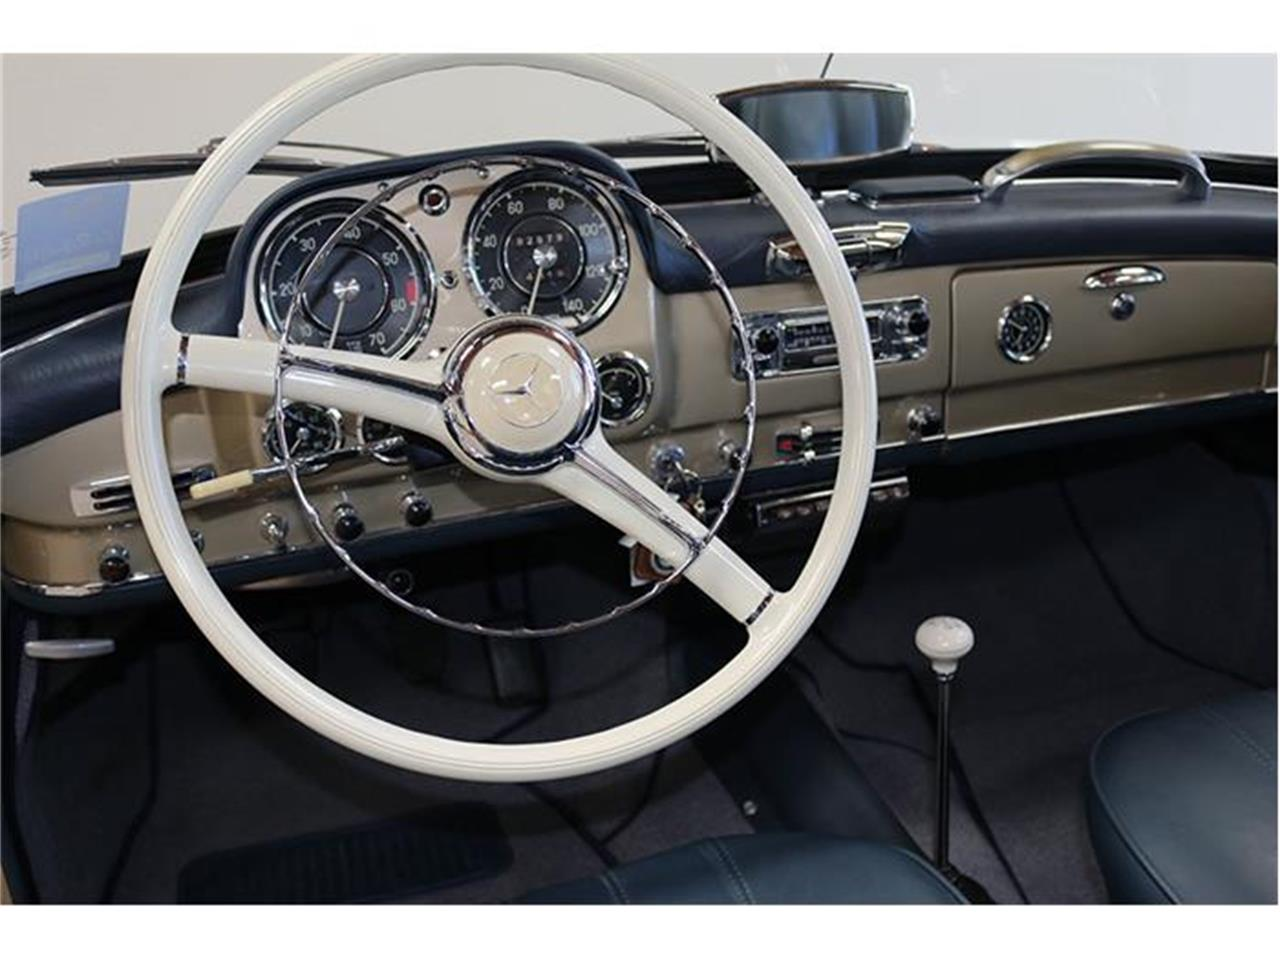 Large Picture of Classic 1958 Mercedes-Benz 190SL located in Fallbrook California Auction Vehicle - F45J